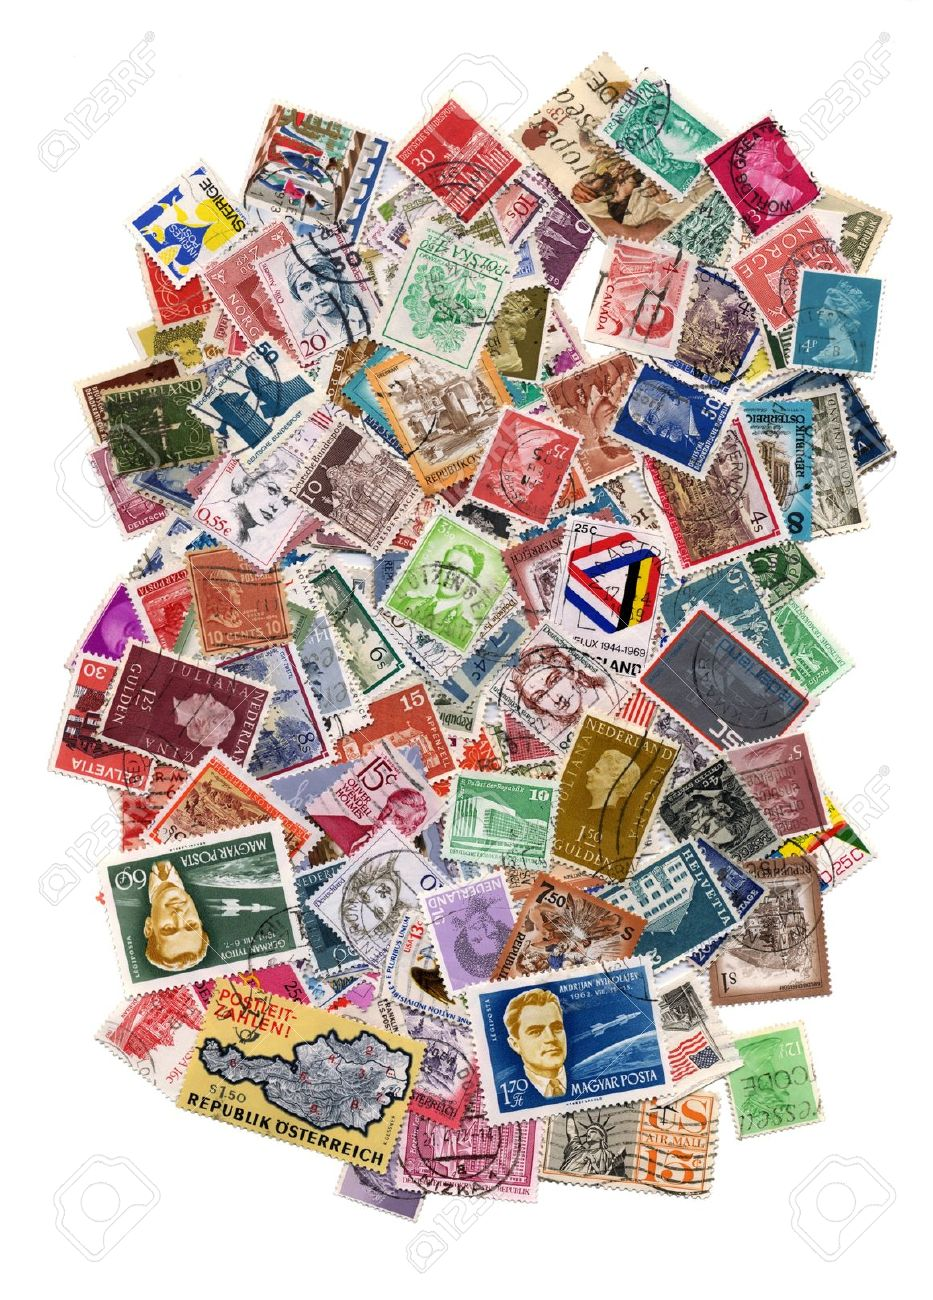 Hundreds of postage stamps from many different countries Stock Photo - 8817399